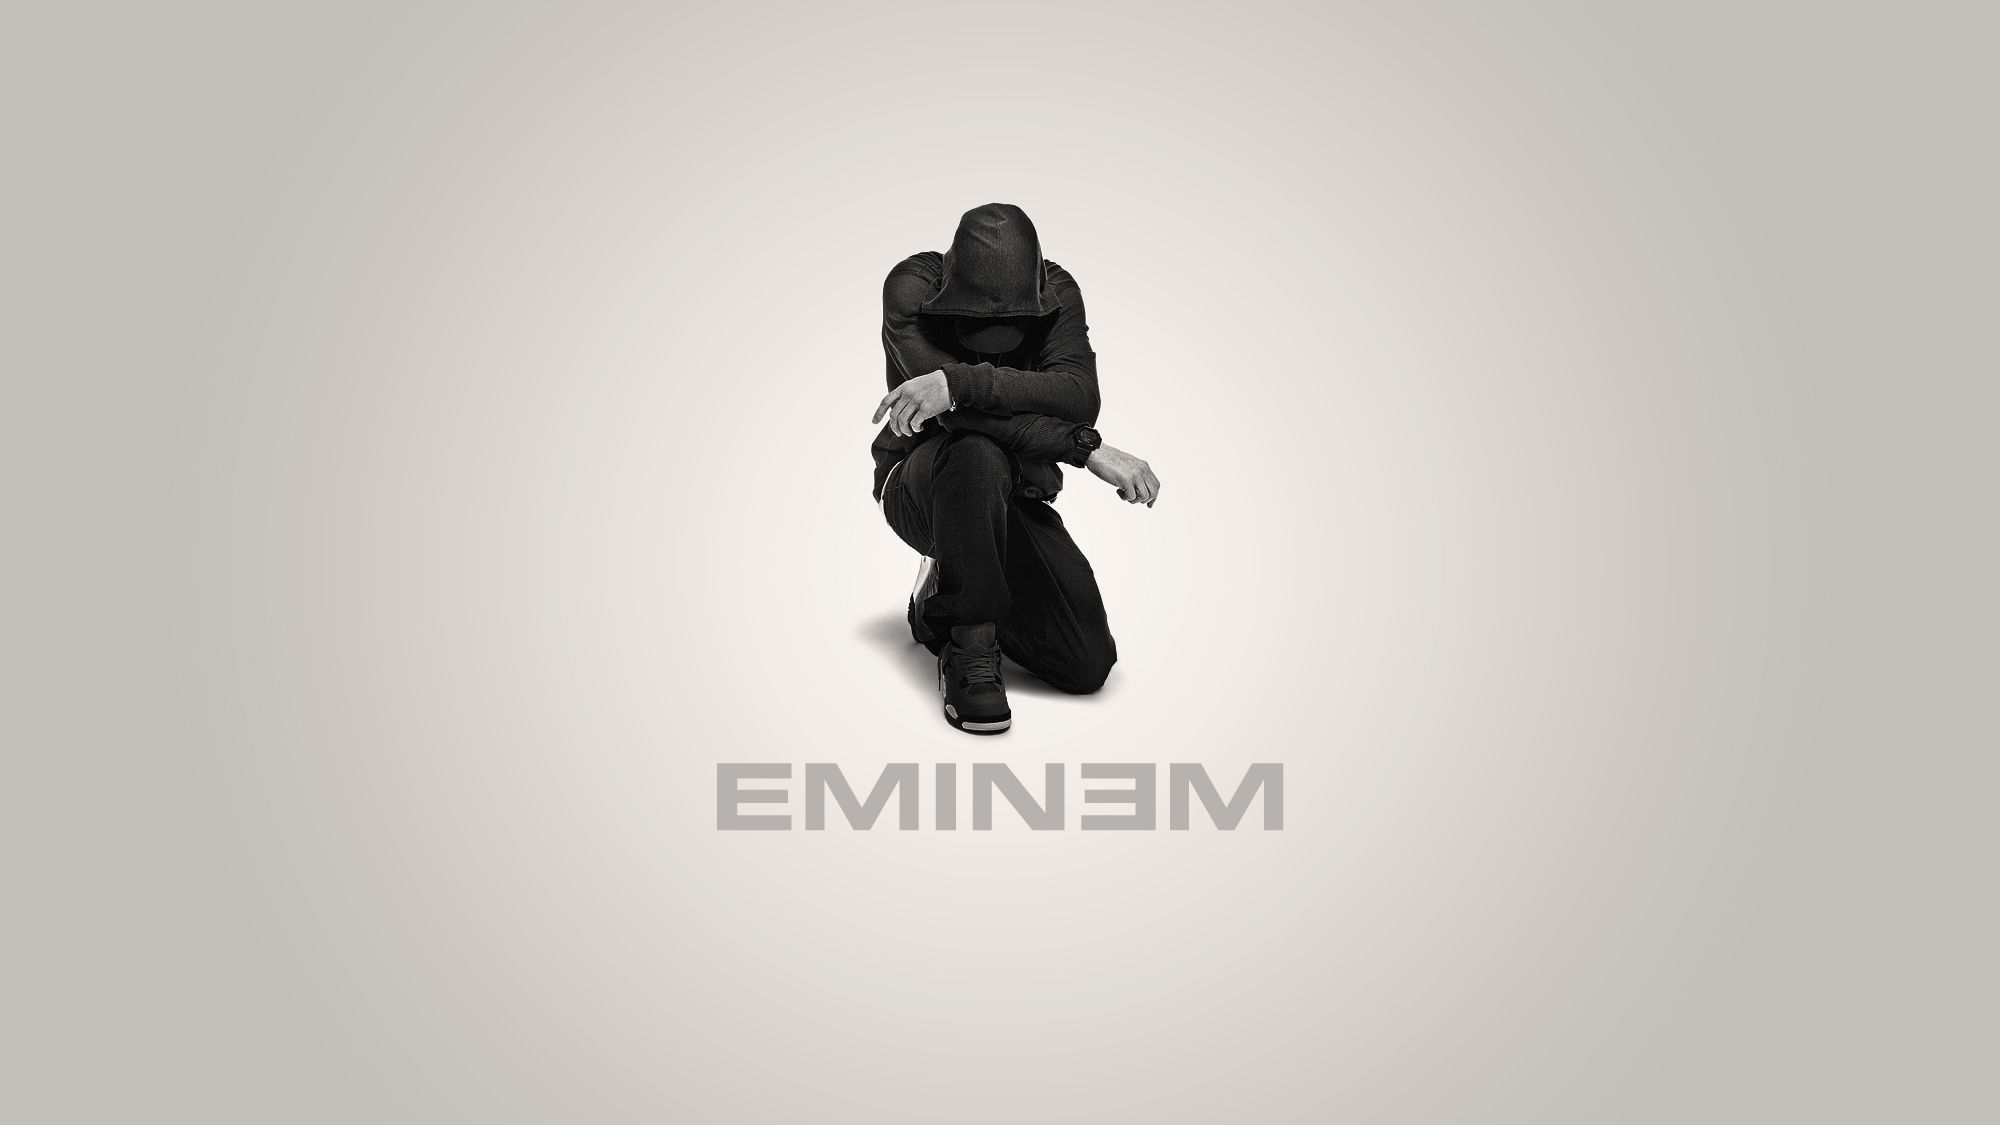 Eminem wallpapers hd download hd wallpapers pinterest eminem eminem wallpapers hd download voltagebd Choice Image